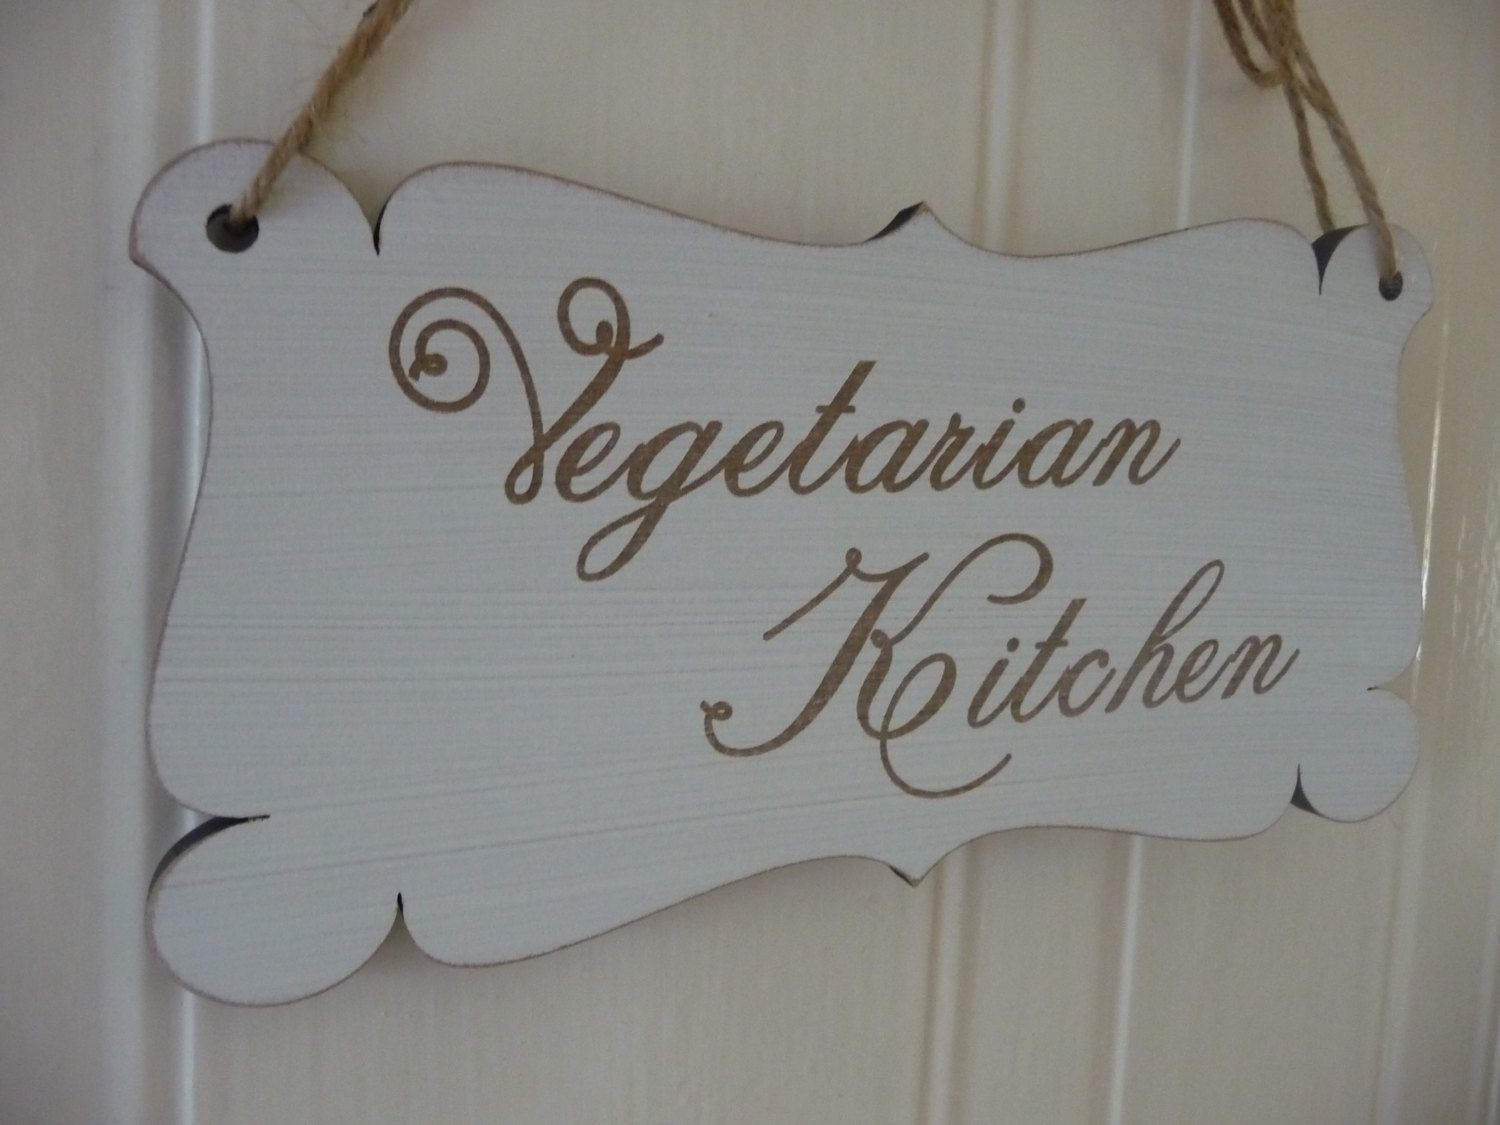 Vegetarian Kitchen Sign, Shabby Chic Kitchen Door Sign, Vegan Engraved Sign, Vegan Home Decor, Kitchen Wall Decor, Wooden Sign by Crafu on Etsy